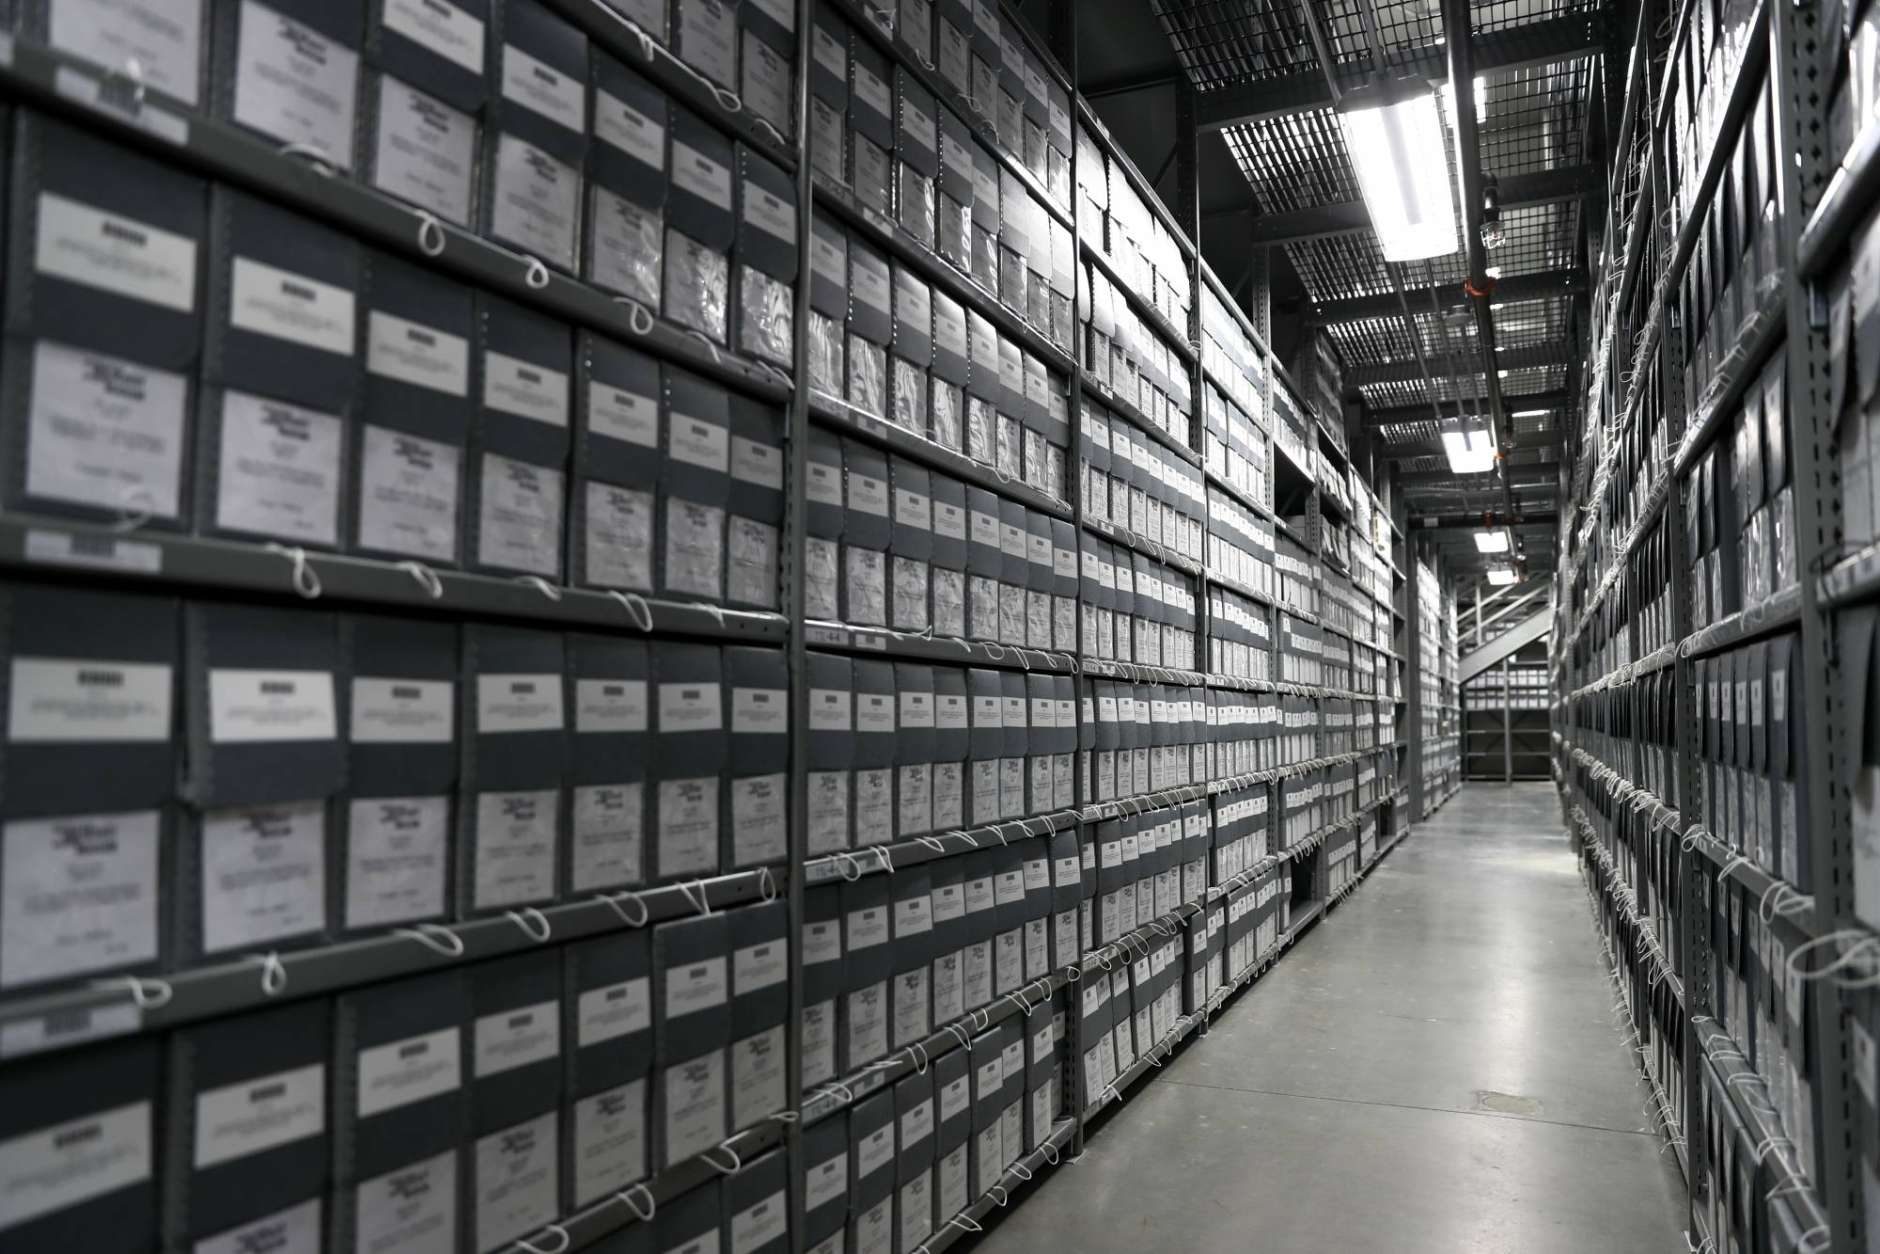 Boxes fill the shelves in the Documents Vault at the U.S. Holocaust Memorial Museum's David and Fela Shapell Family Collections, Conservation and Research Center in Bowie, Md., Monday, April 24, 2017. The Shapell Center is a new state-of-the-art facility that will house the collection of record of the Holocaust. (AP Photo/Carolyn Kaster)